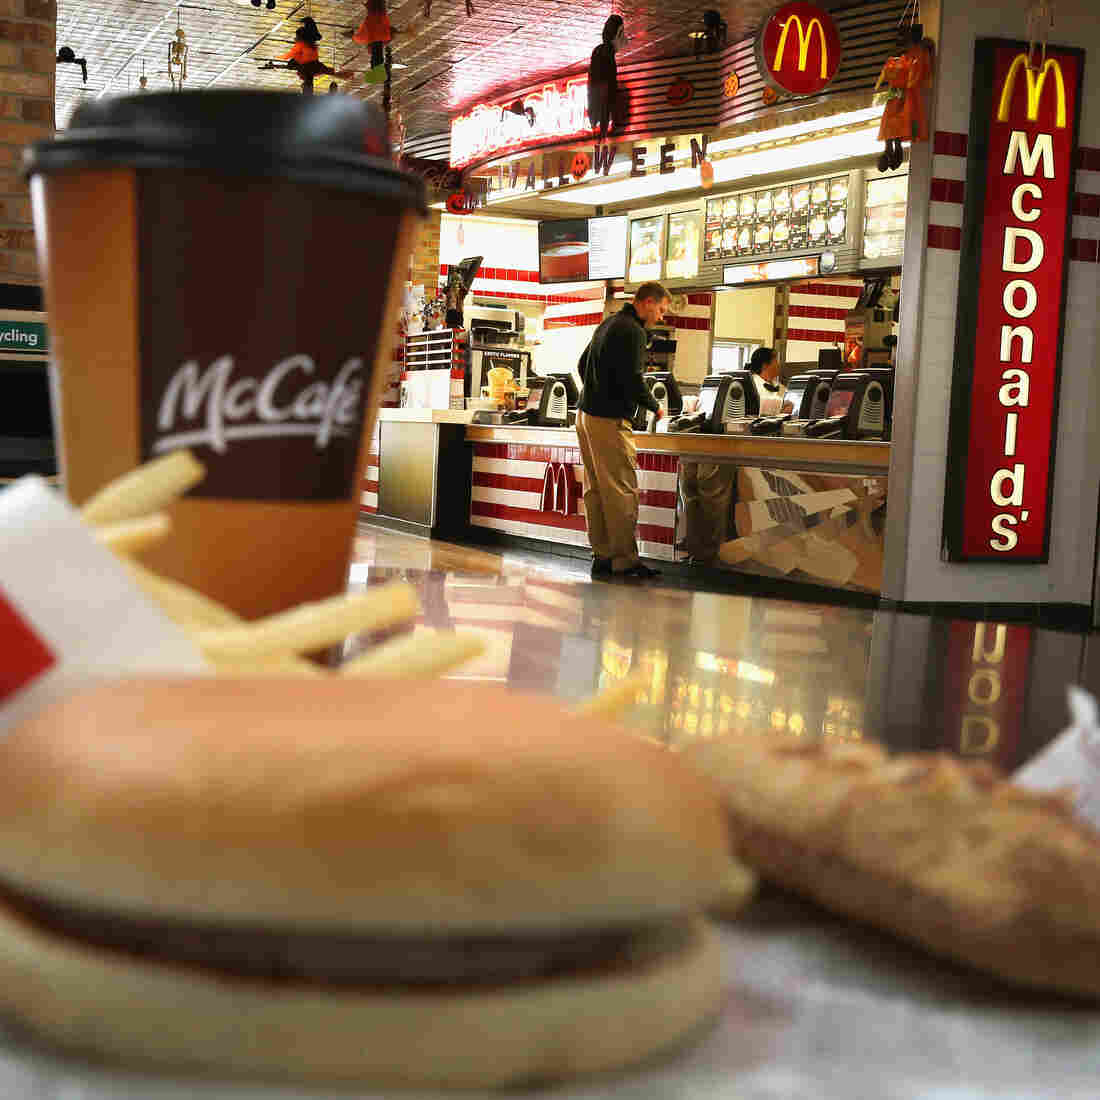 """Customers order food from a McDonald's restaurant in Des Plaines, Ill. The company has promised to start buying """"verified sustainable beef"""" in 2016."""